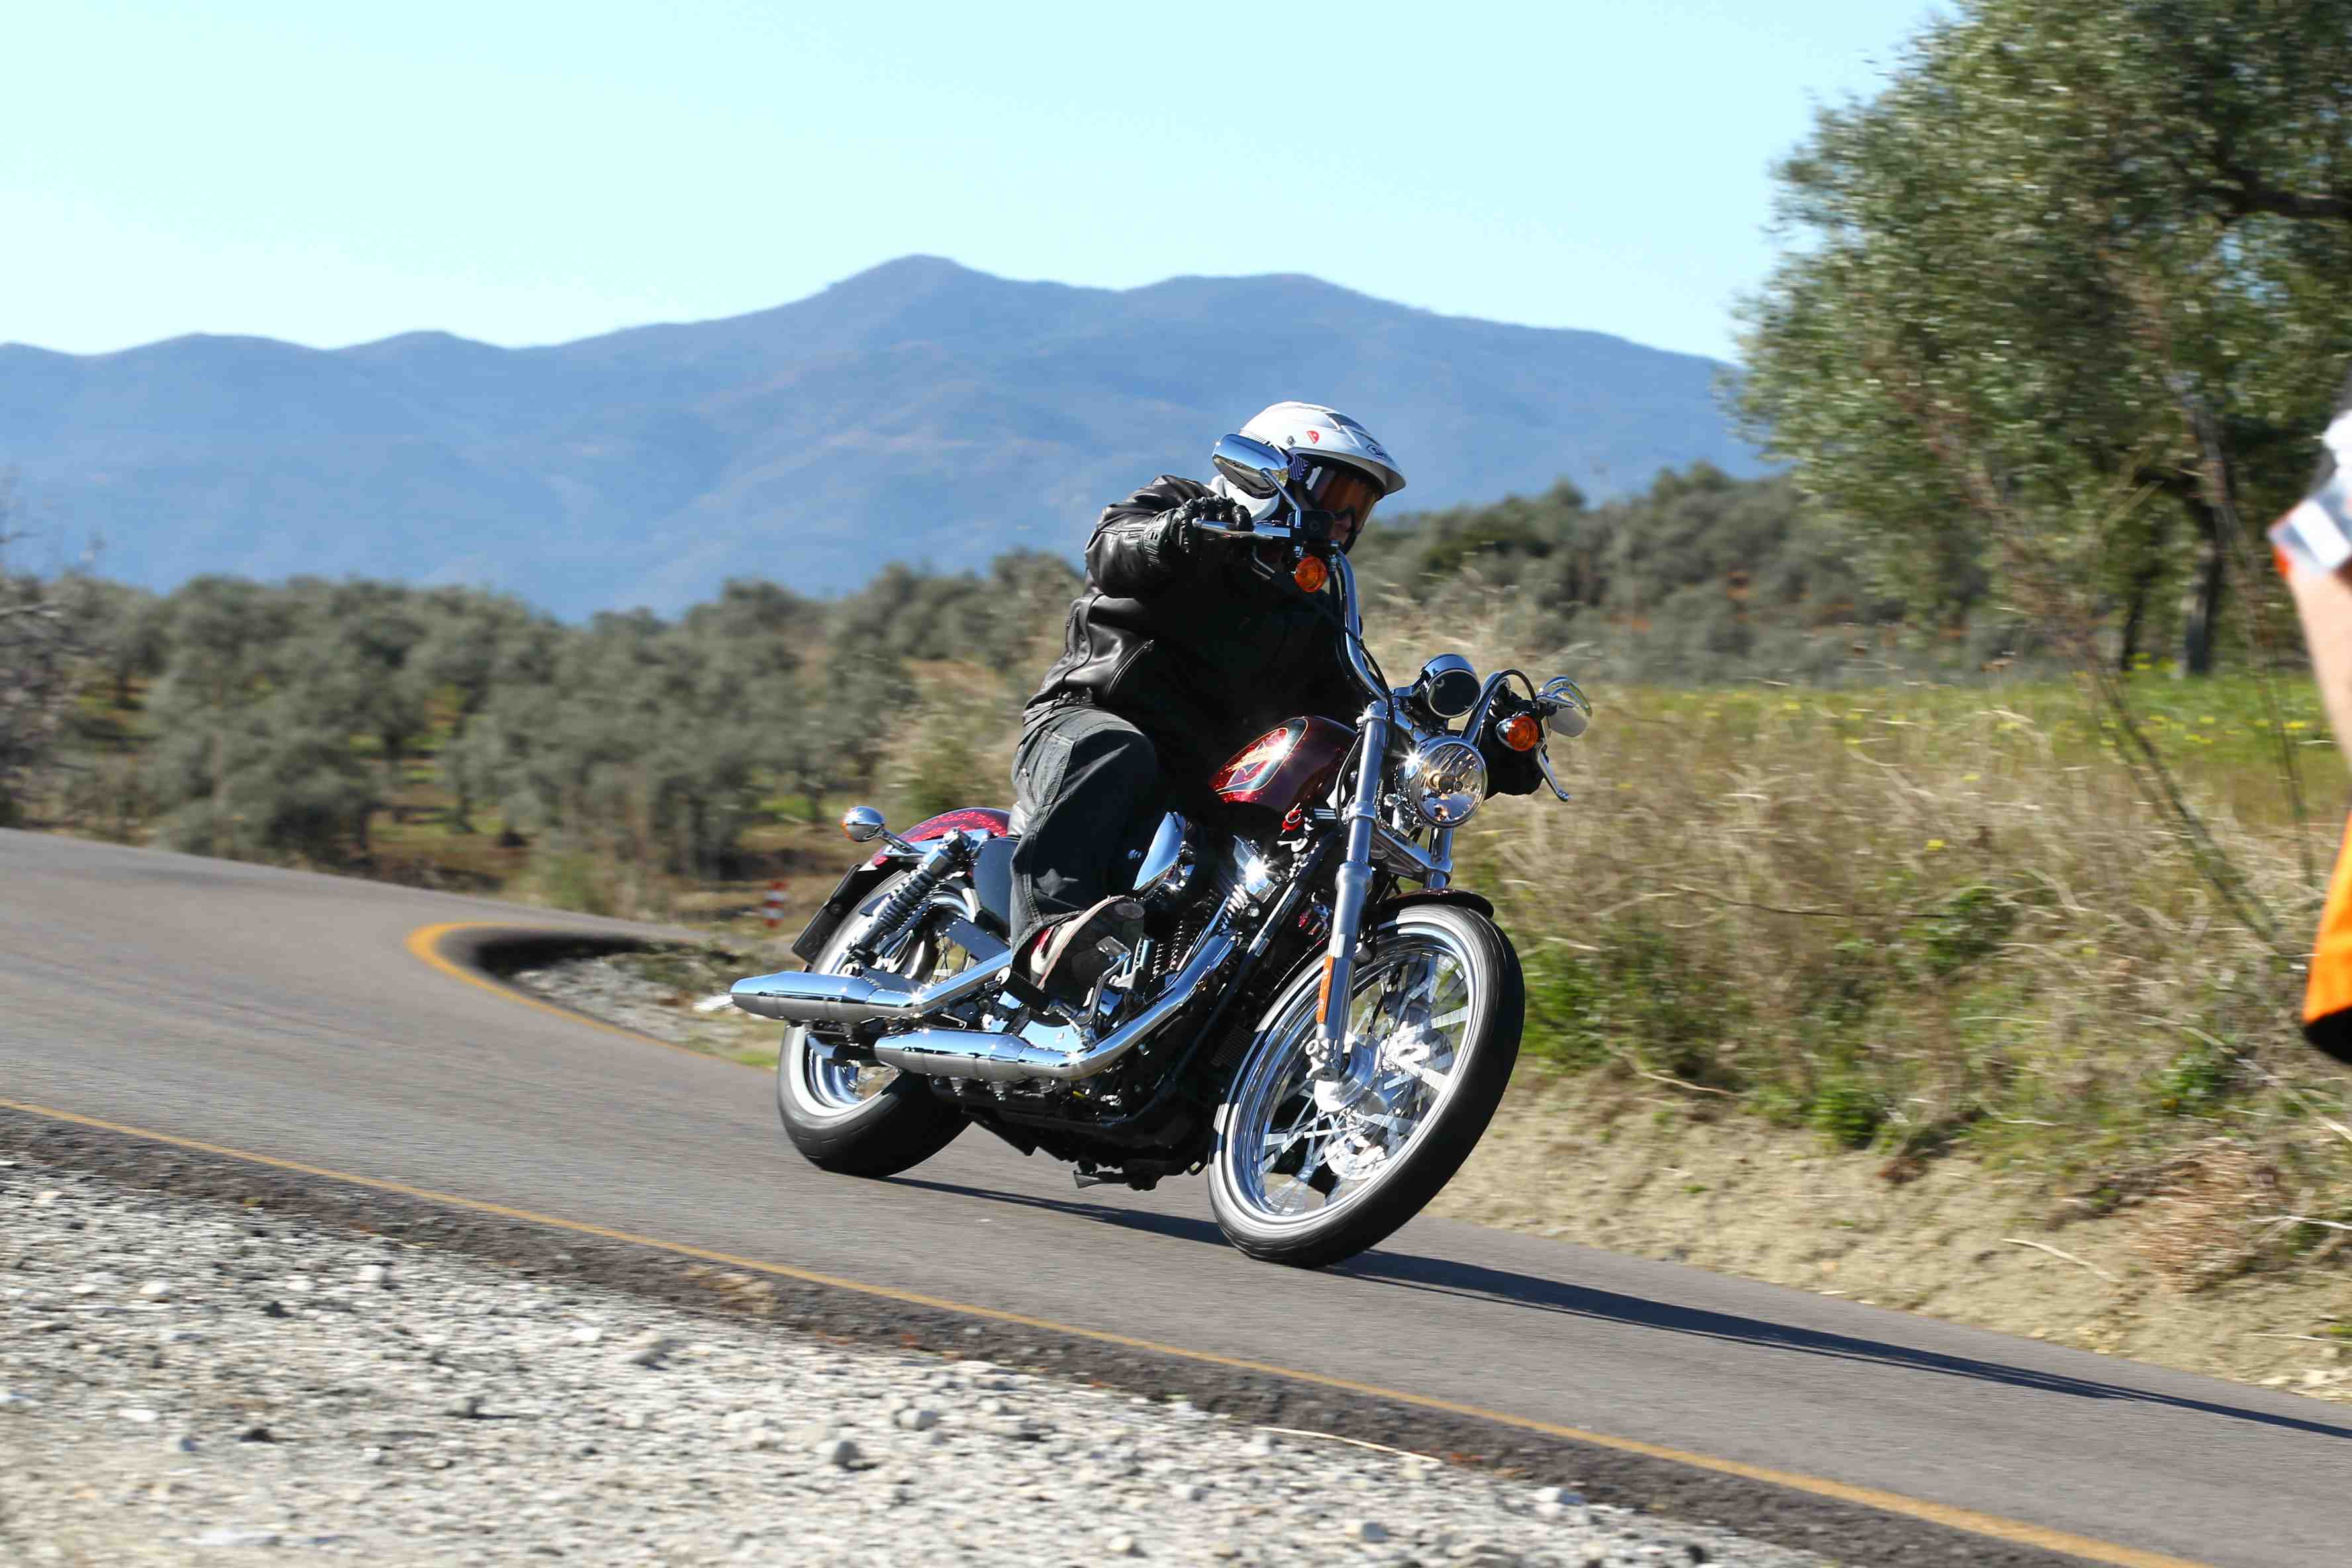 First Ride Harley Davidson Sportster 72 on Life Cycles Bikes